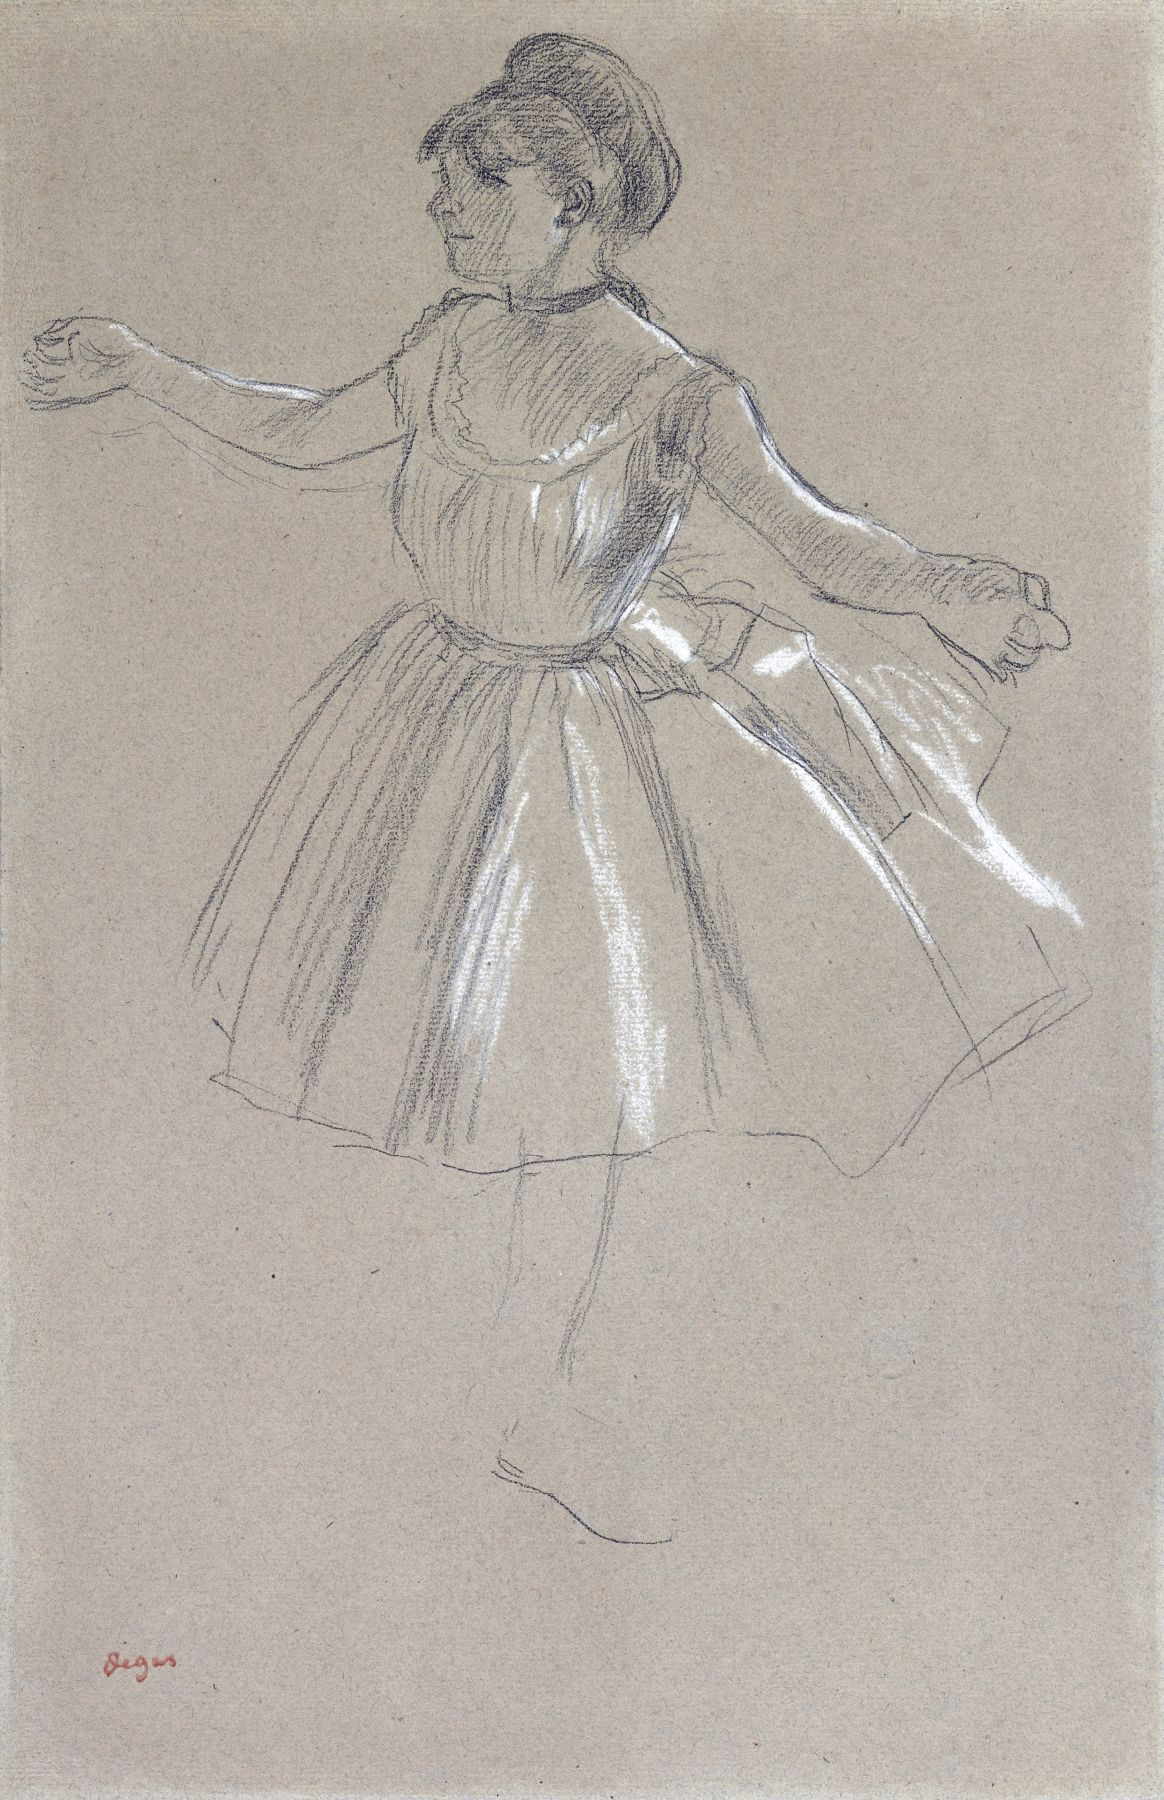 Edgar Degas  Dancer - Melina Darde, c. 1878-1880  Black chalk heightened with white on paper 18 3/8 x 12 inches